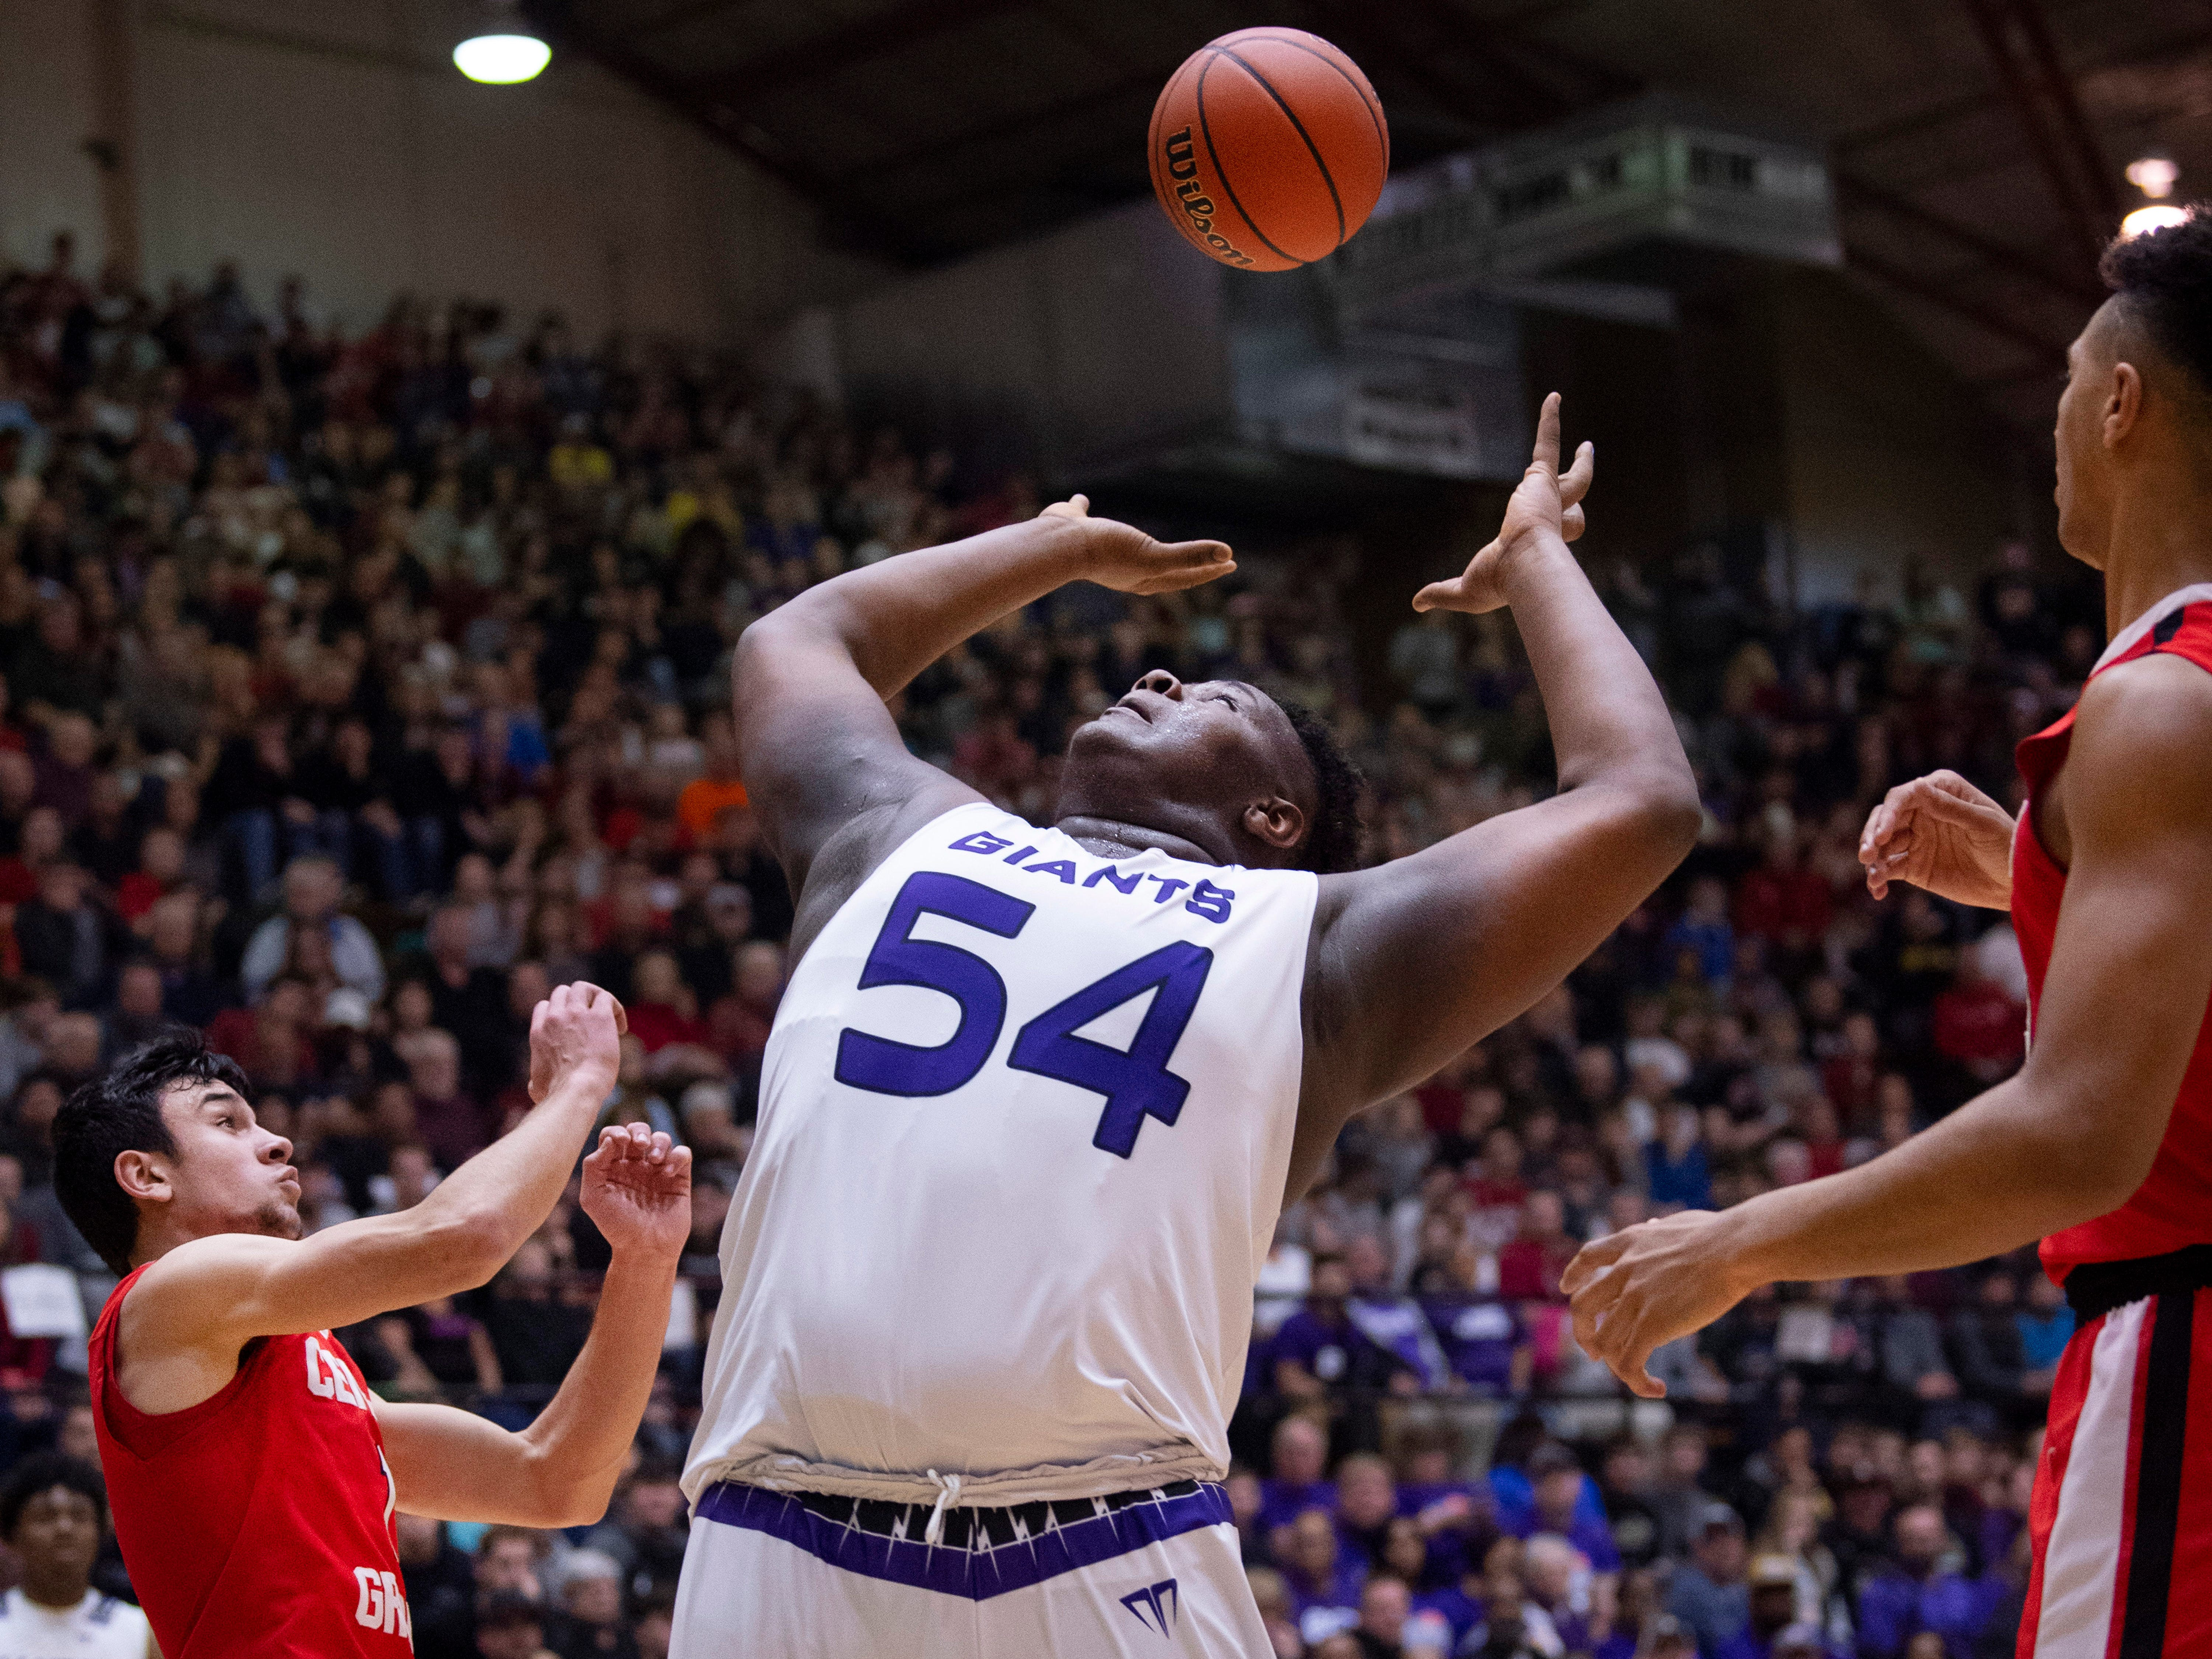 Ben Davis's Dawand Jones (54) grabs a rebound in front of Center Grove's Ben Nicoson (1) and Trayce Jackson-Davis (23) during the 4A Boys Indiana Semi-State Basketball Tournament at the Hatchet House in Washington, Ind., Saturday afternoon.